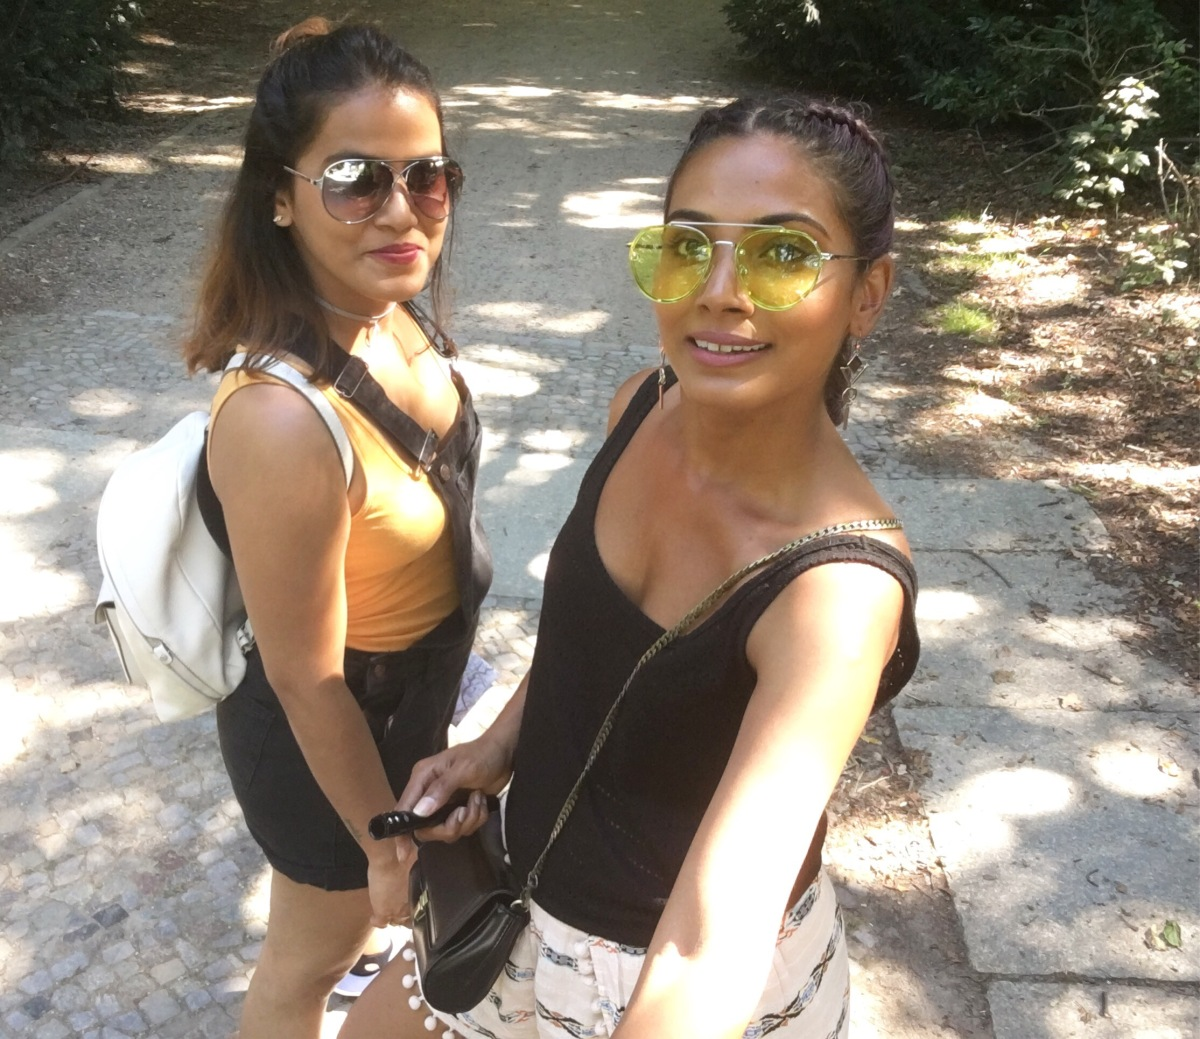 Our Trip toBERLIN